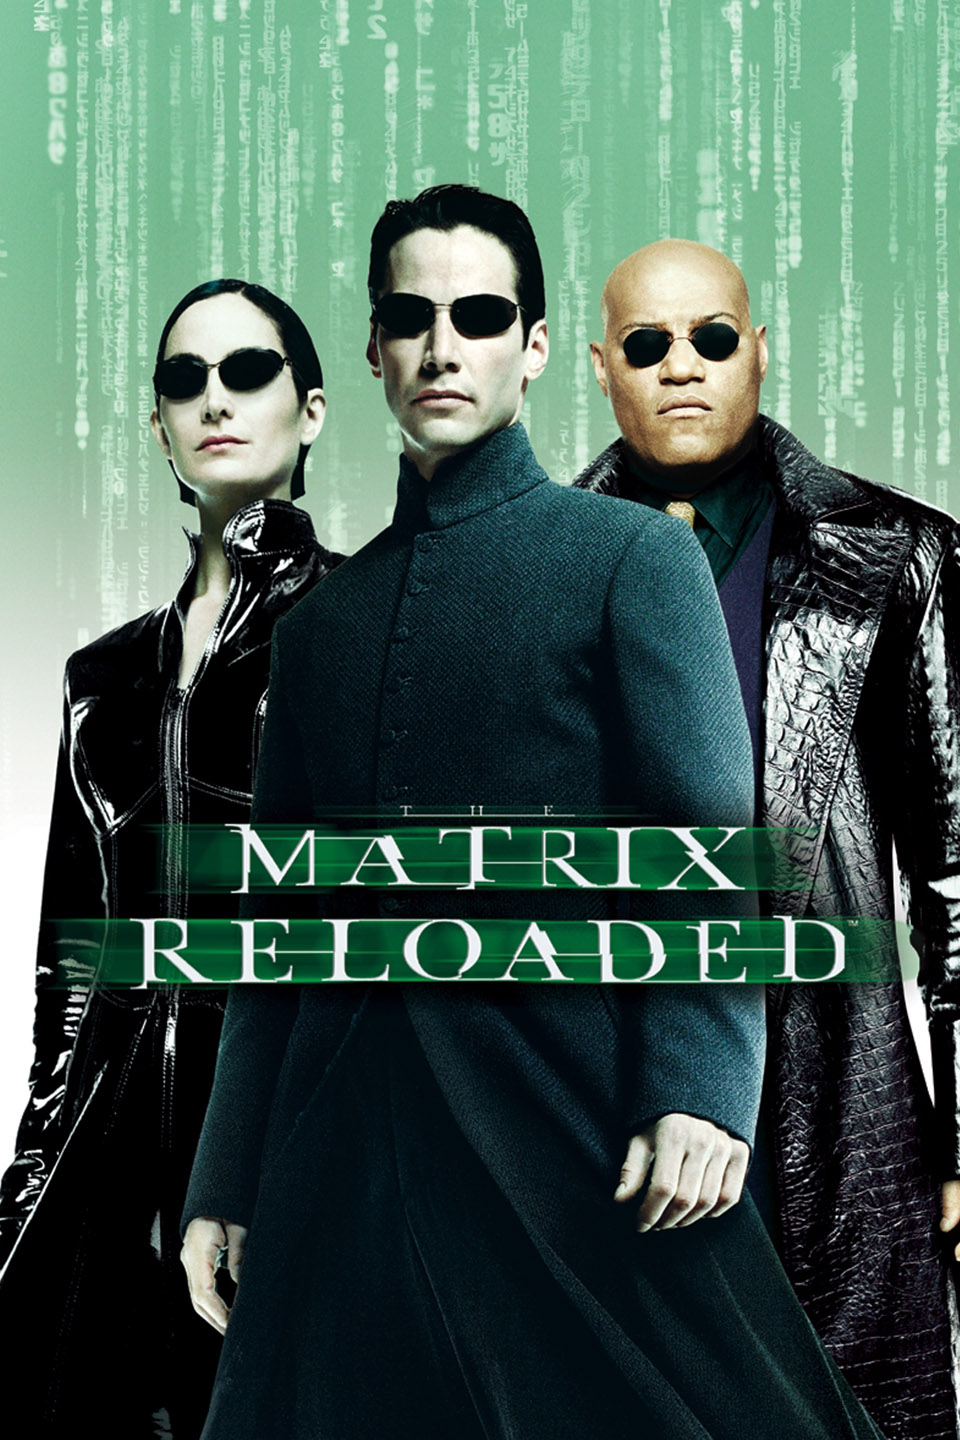 Trinity, Neo, and Morpheus in a promo image for The Matrix Reloaded (2003)